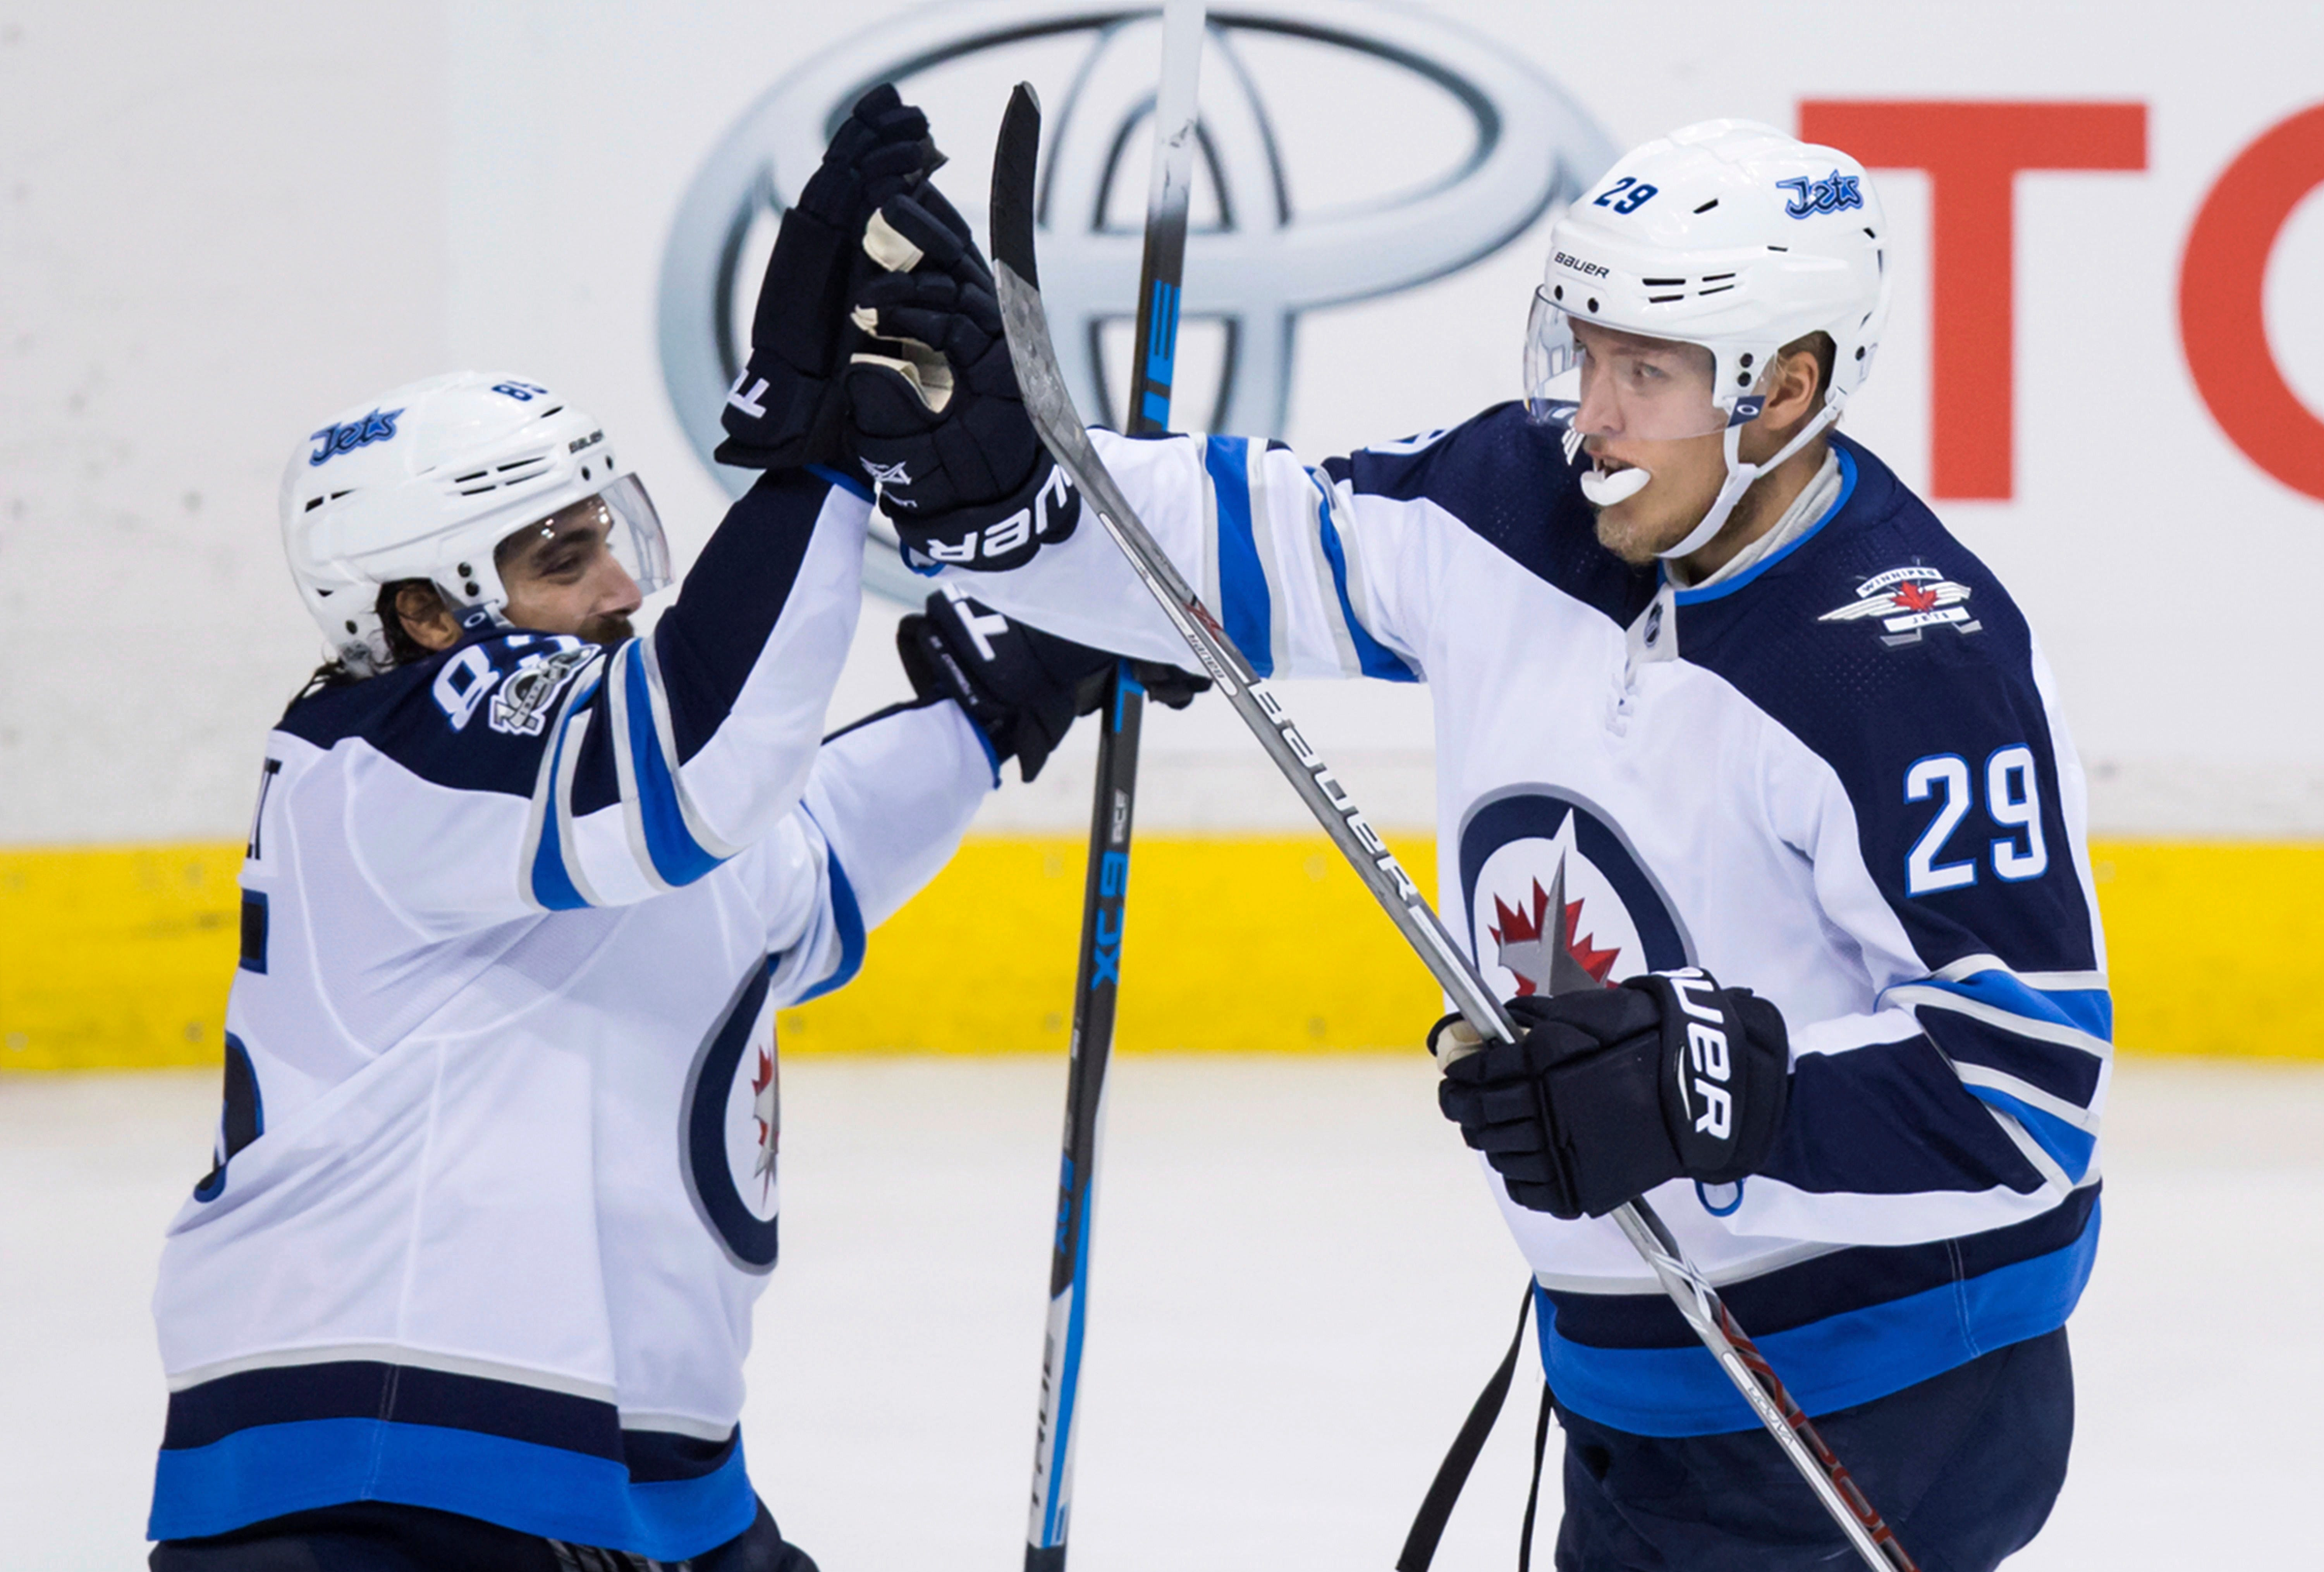 Laine, Myers score late in 2nd, Jets top Canucks 4-2